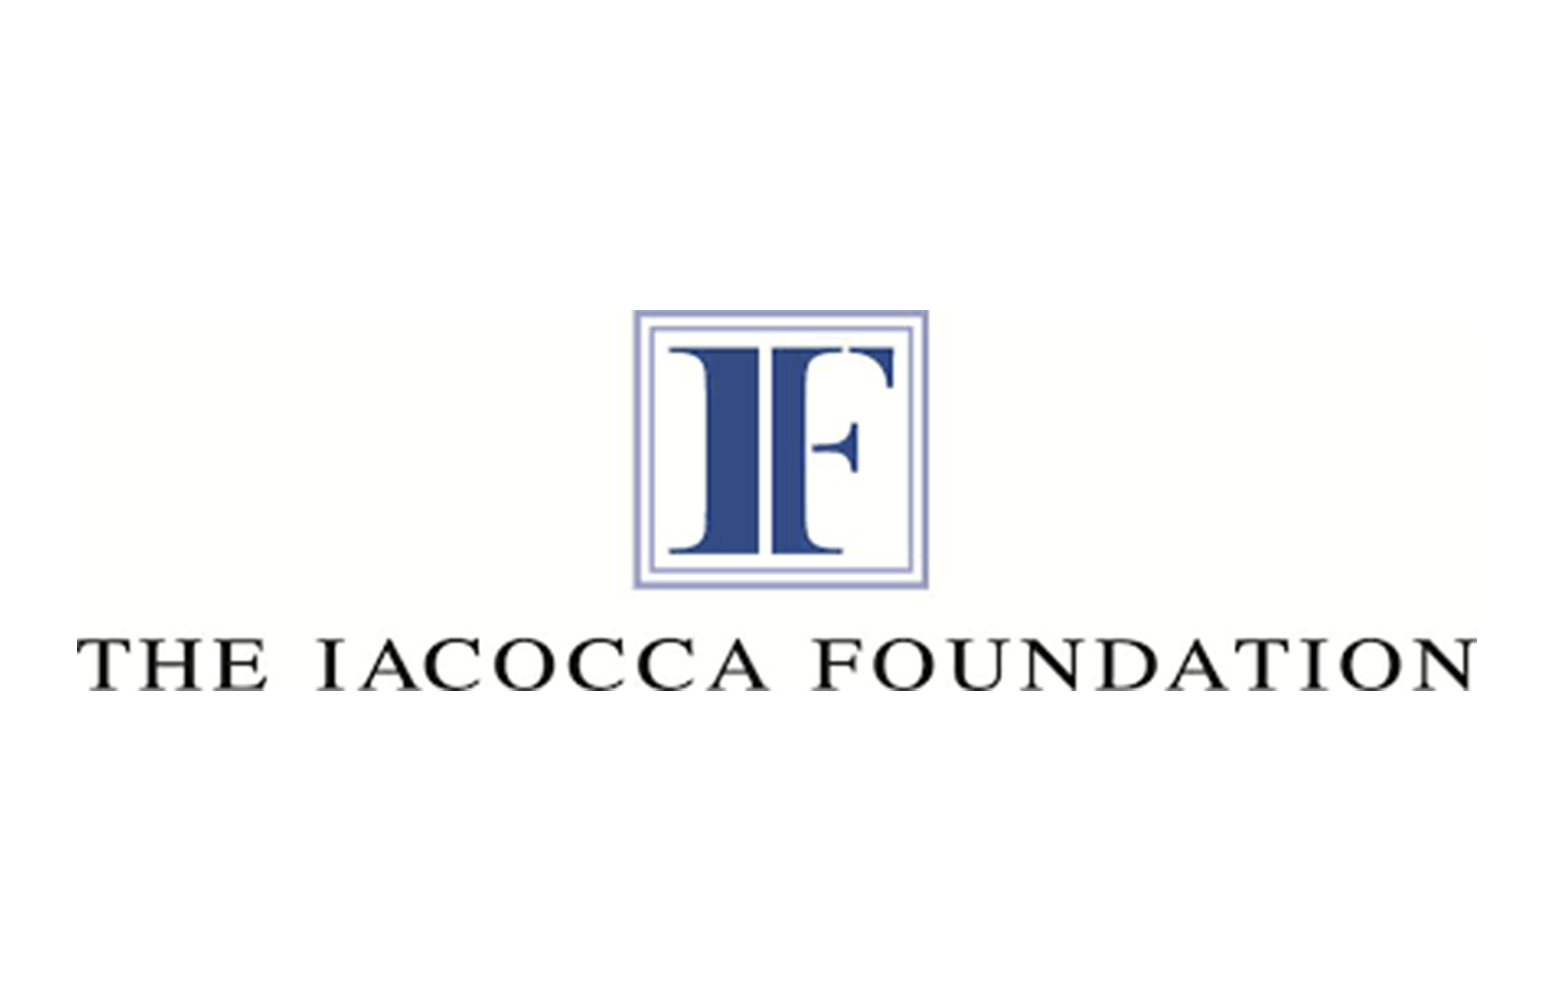 The Iacocca Foundation